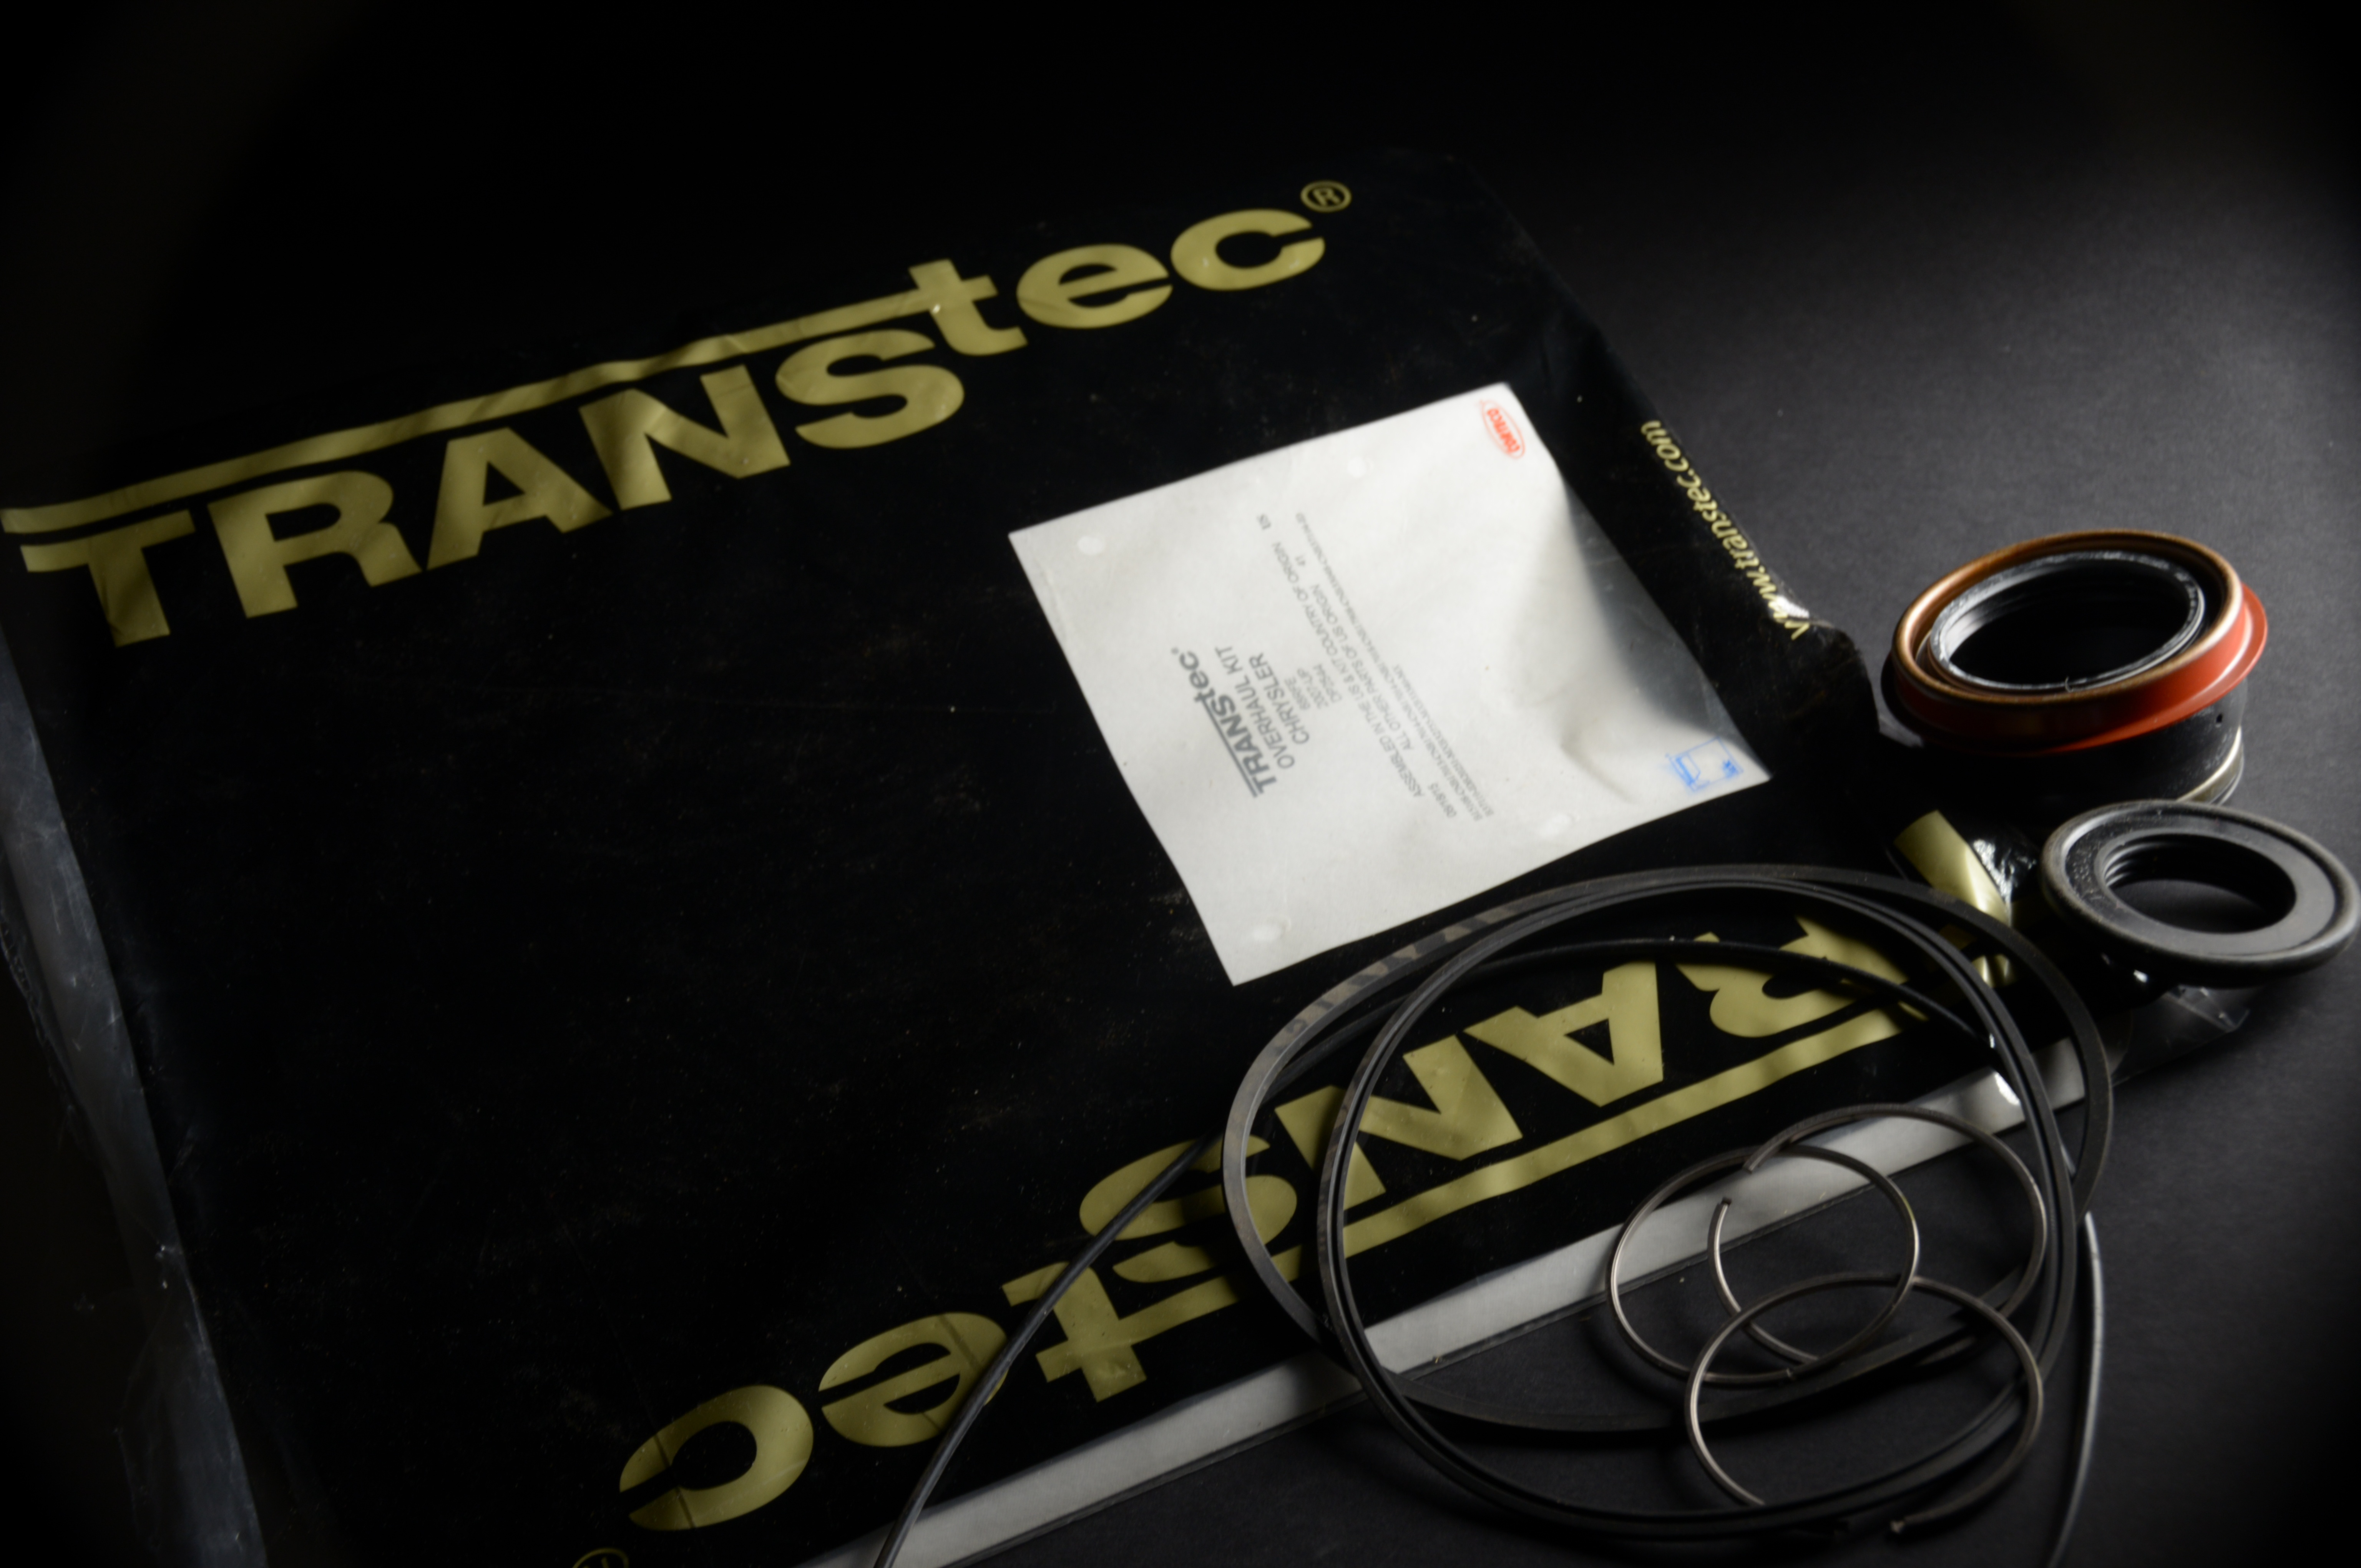 transtec-tomorrows-sealing-technology-today